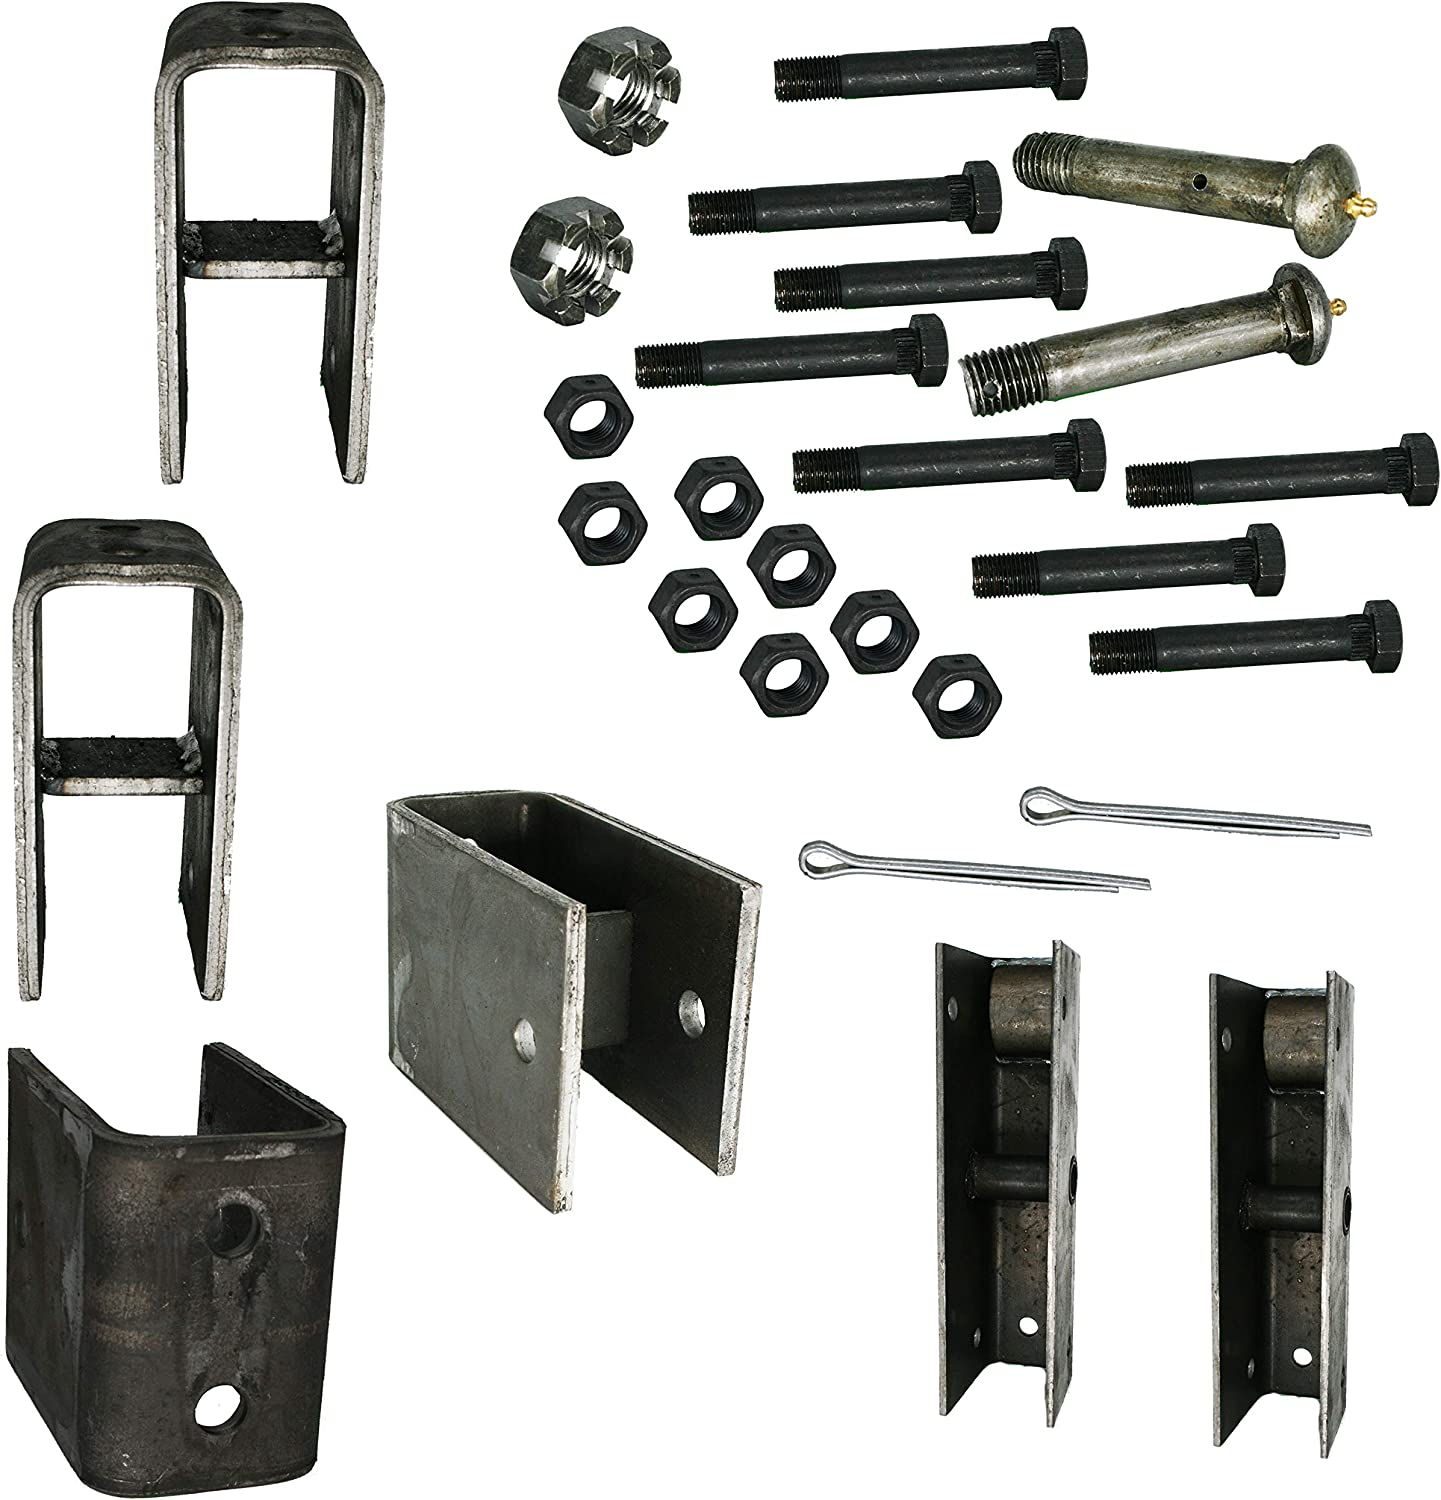 M-parts Trailer Tandem Slipper Hanger Kit for 5200-8000 lb Axles MATAPT6SE